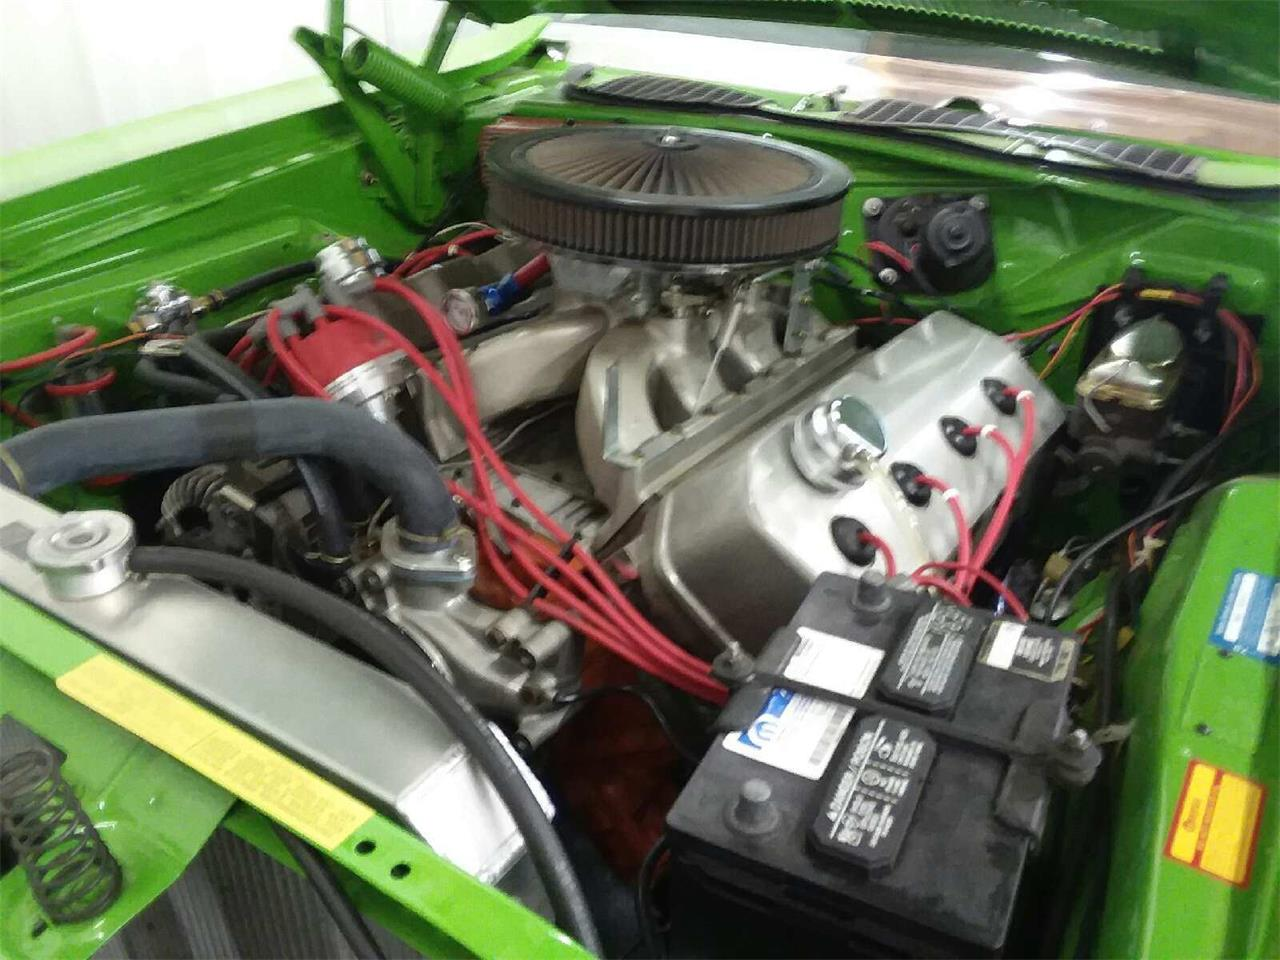 1971 Dodge Challenger R/T for sale in Waterford, PA – photo 15